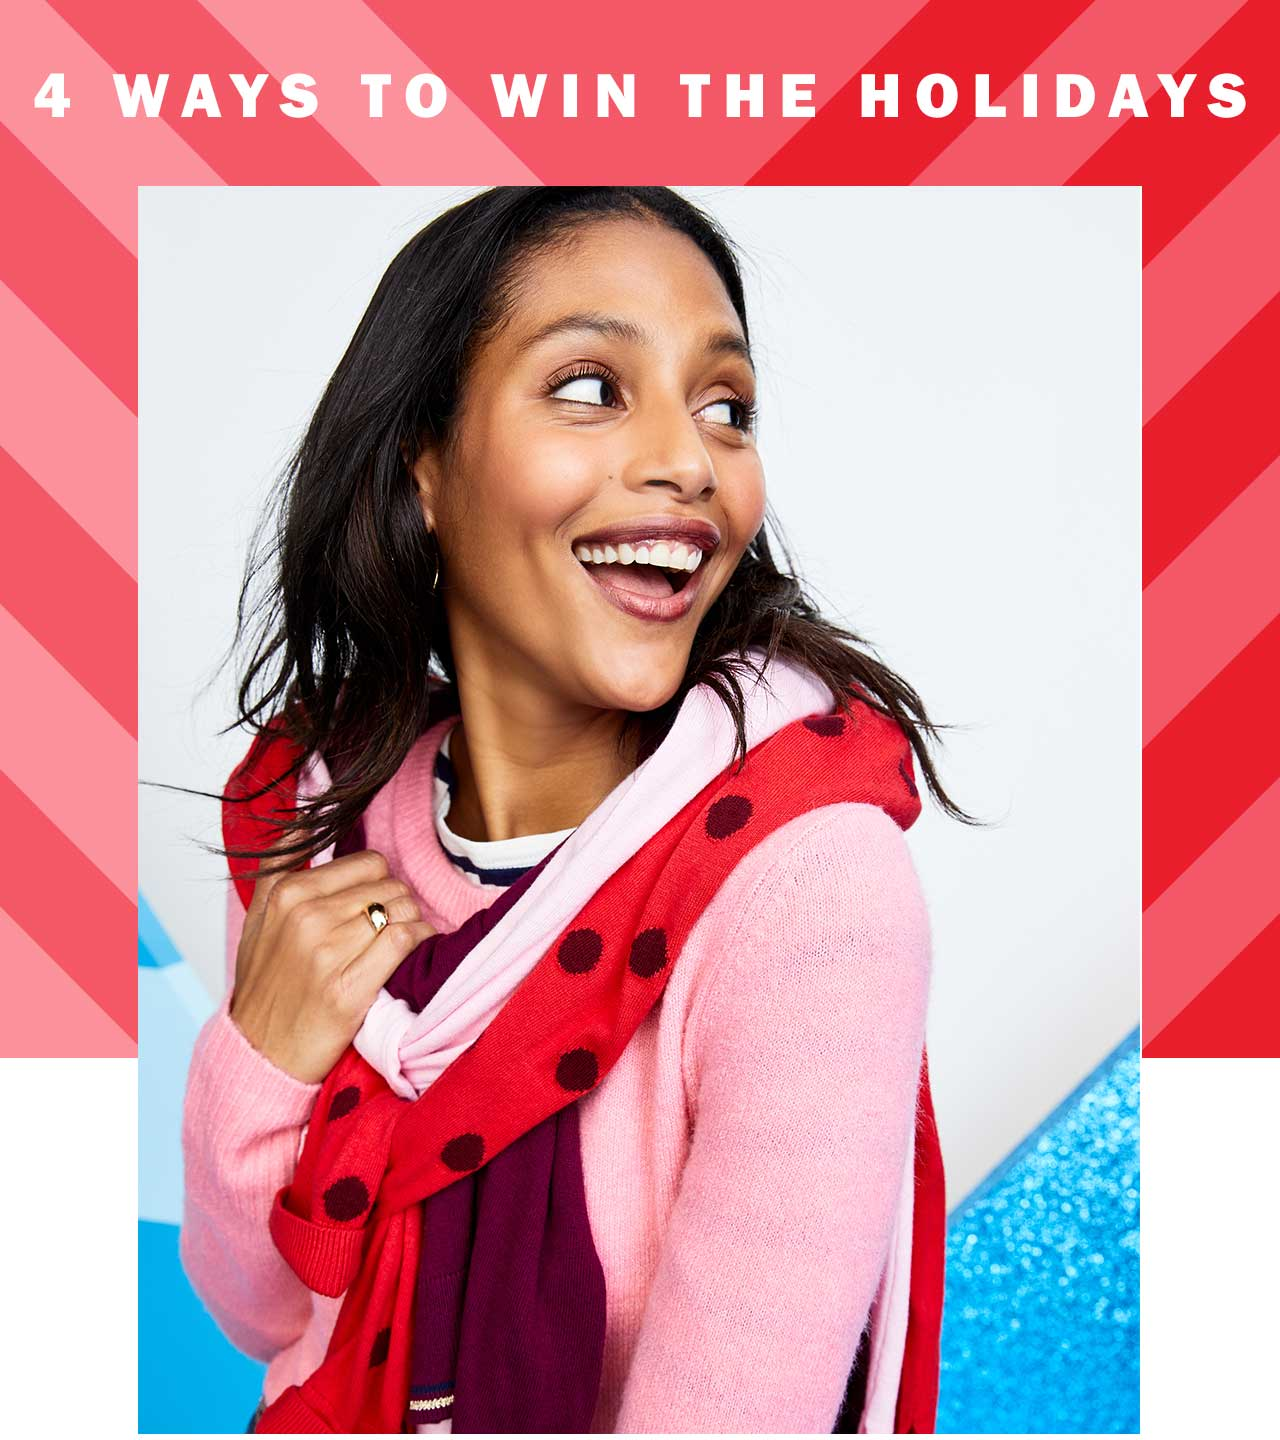 4 ways to win the holidays